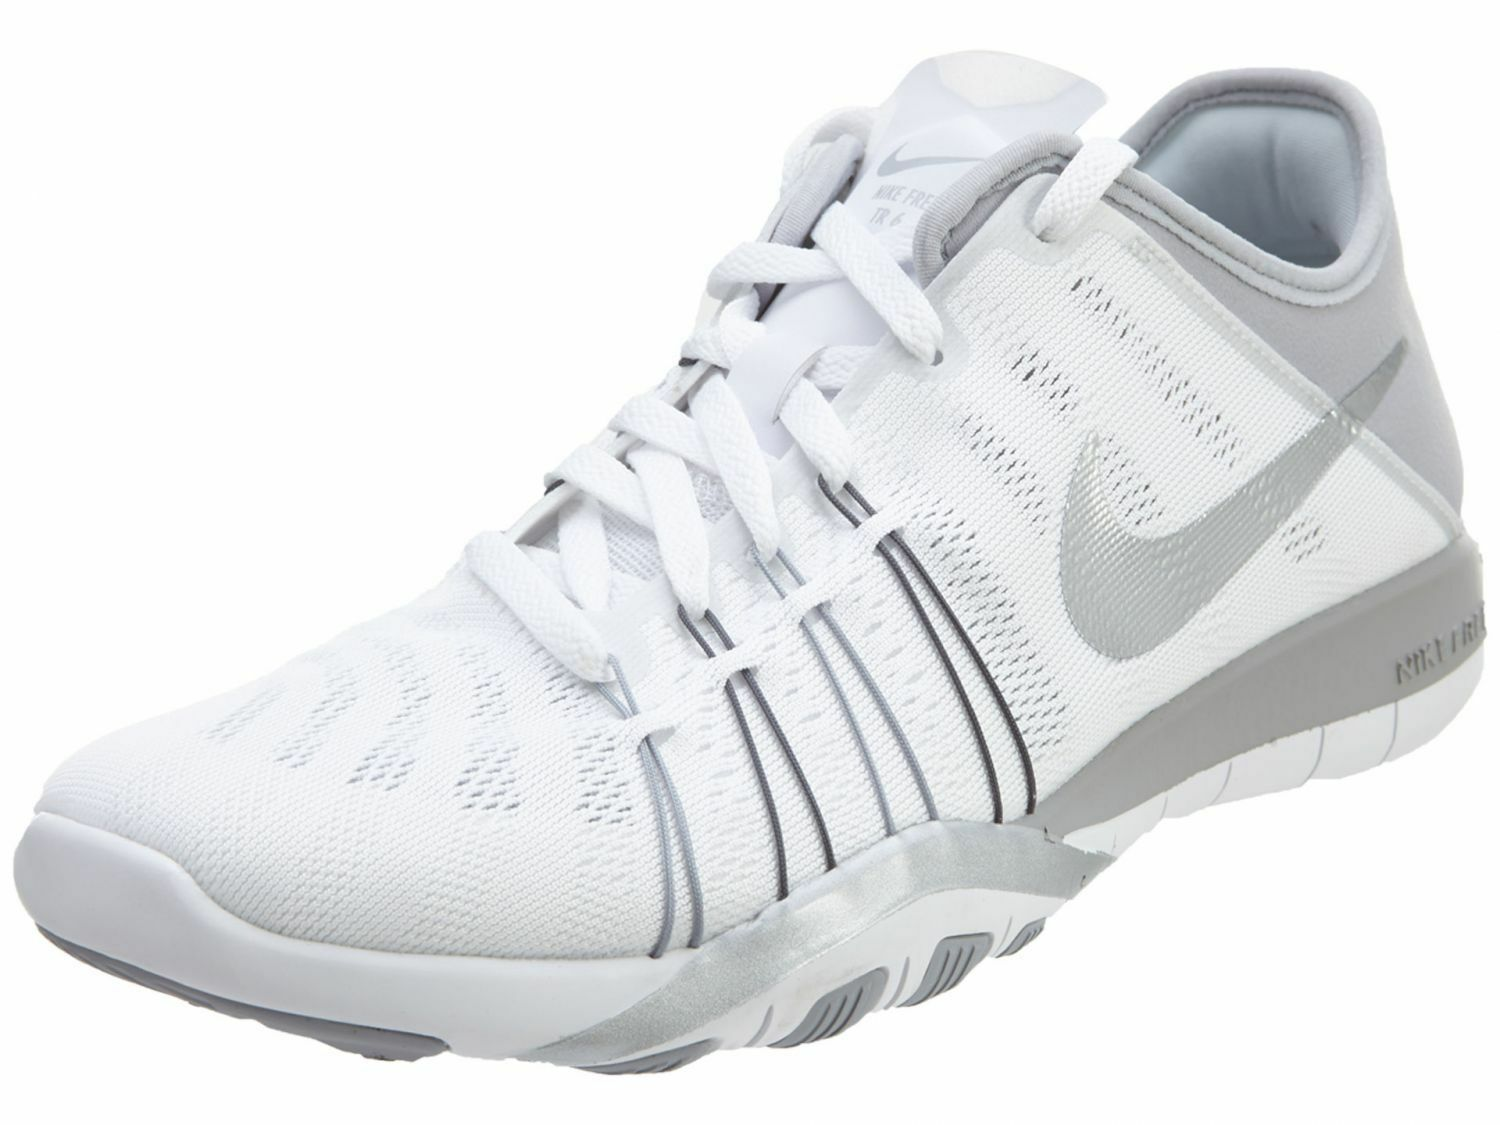 Nike Free TR 6 Women's Running Training shoes White 833413 100 Wild casual shoes